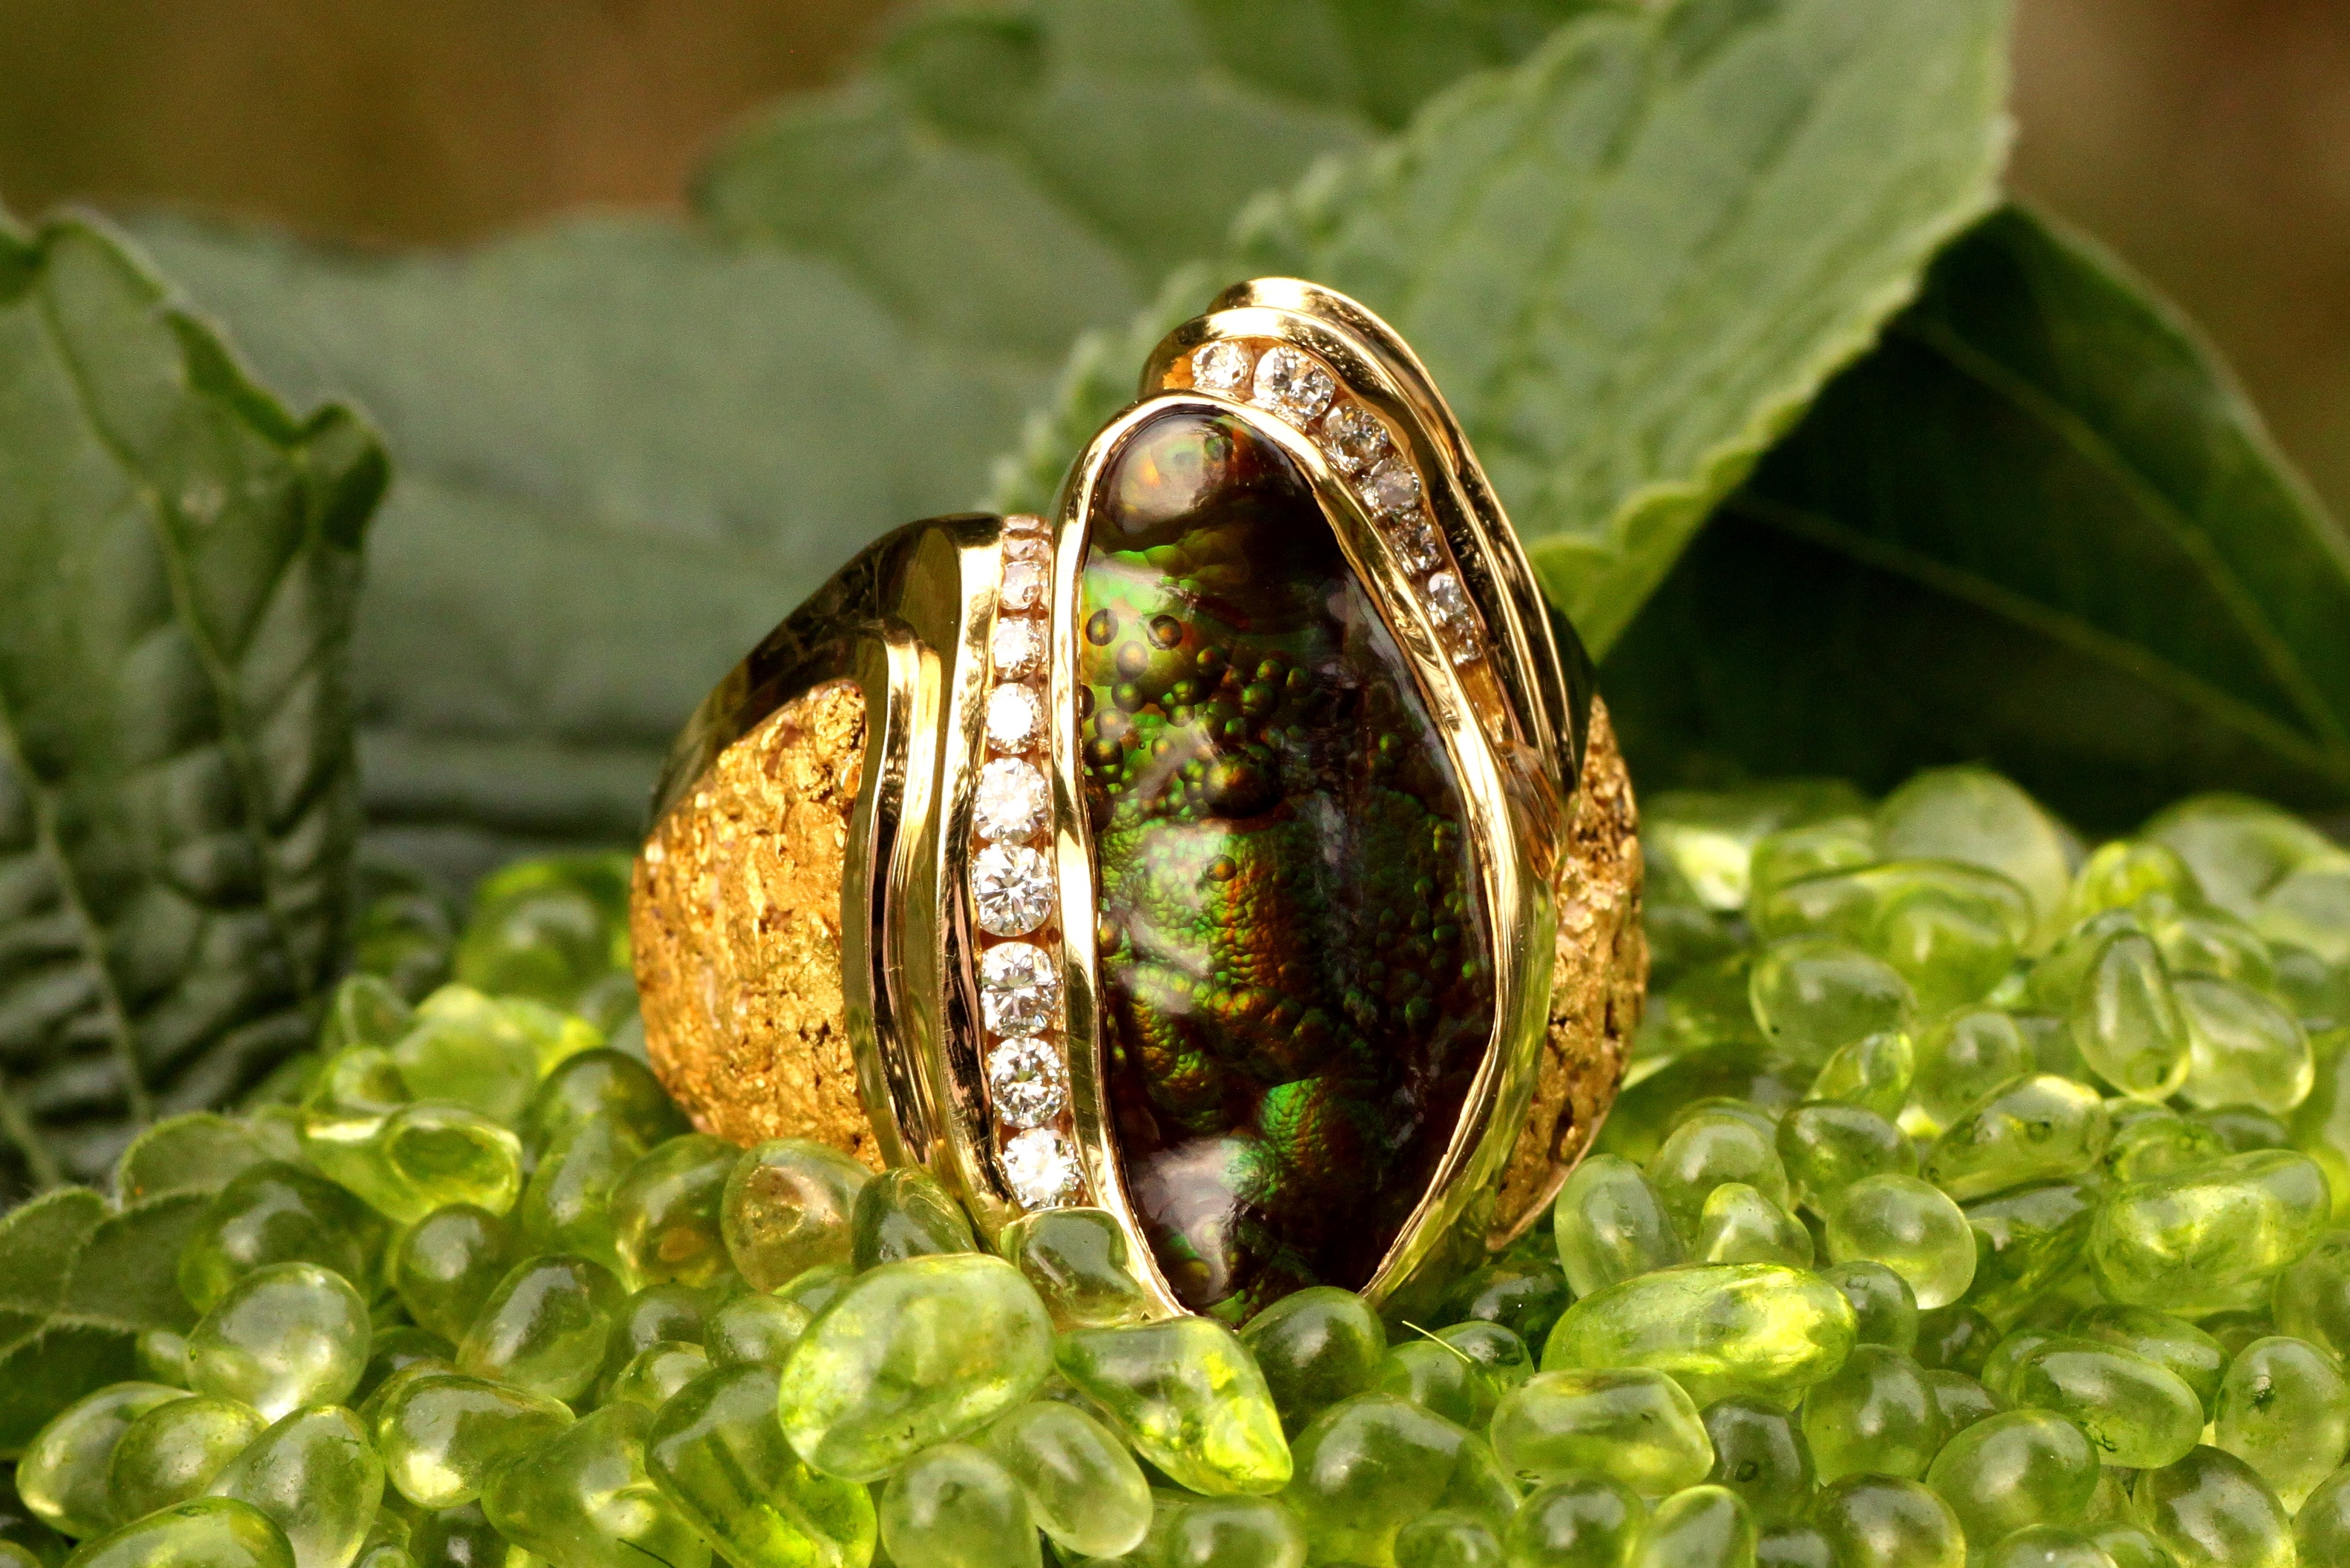 Alaskan Gold Nugget and Diamond Fire Agate Ring in 18Kt Yellow Gold.